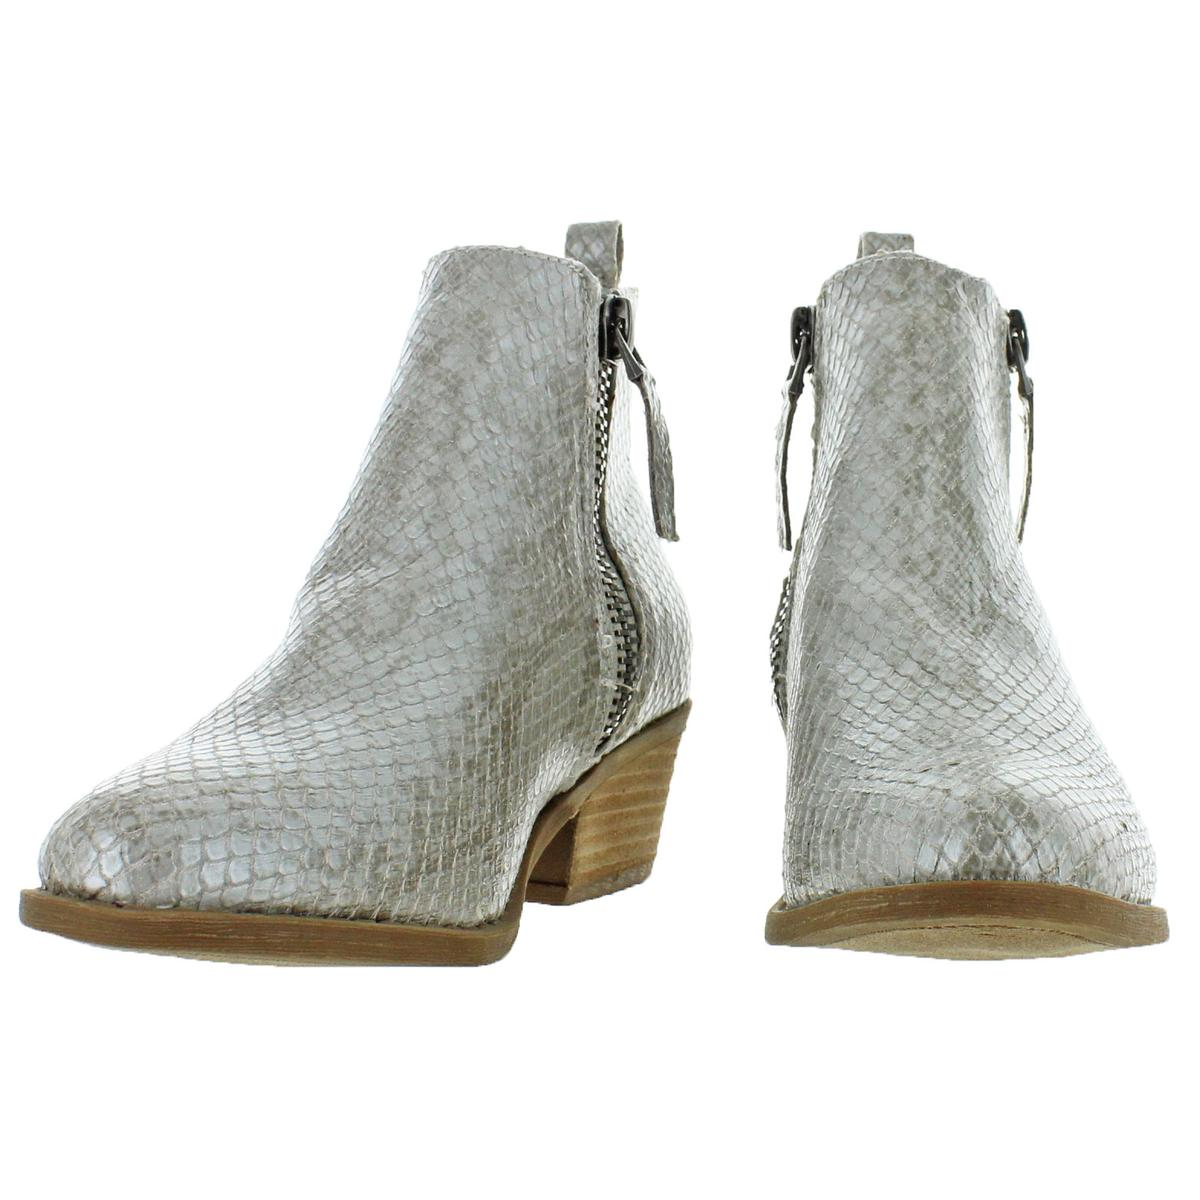 Size Us 9.5 Boots Women's Shoes Very G Cassidy Women's Metallic Block Heel Ankle Boots